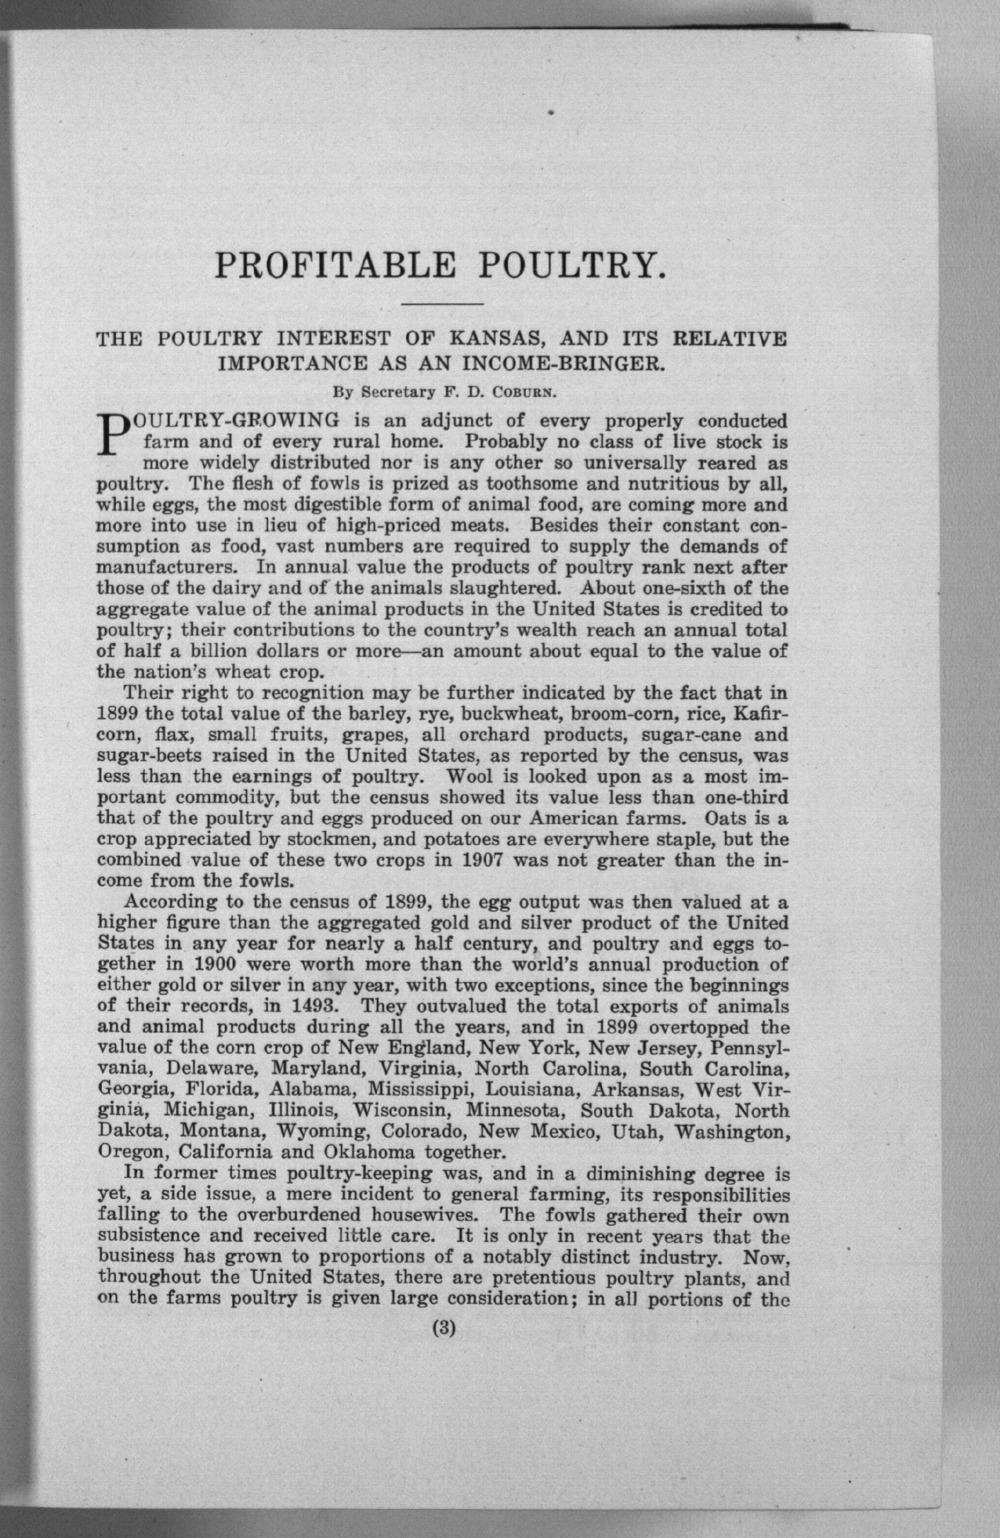 Sixteenth biennial report of the Kansas State Board of Agriculture, 1907-1908 - 3